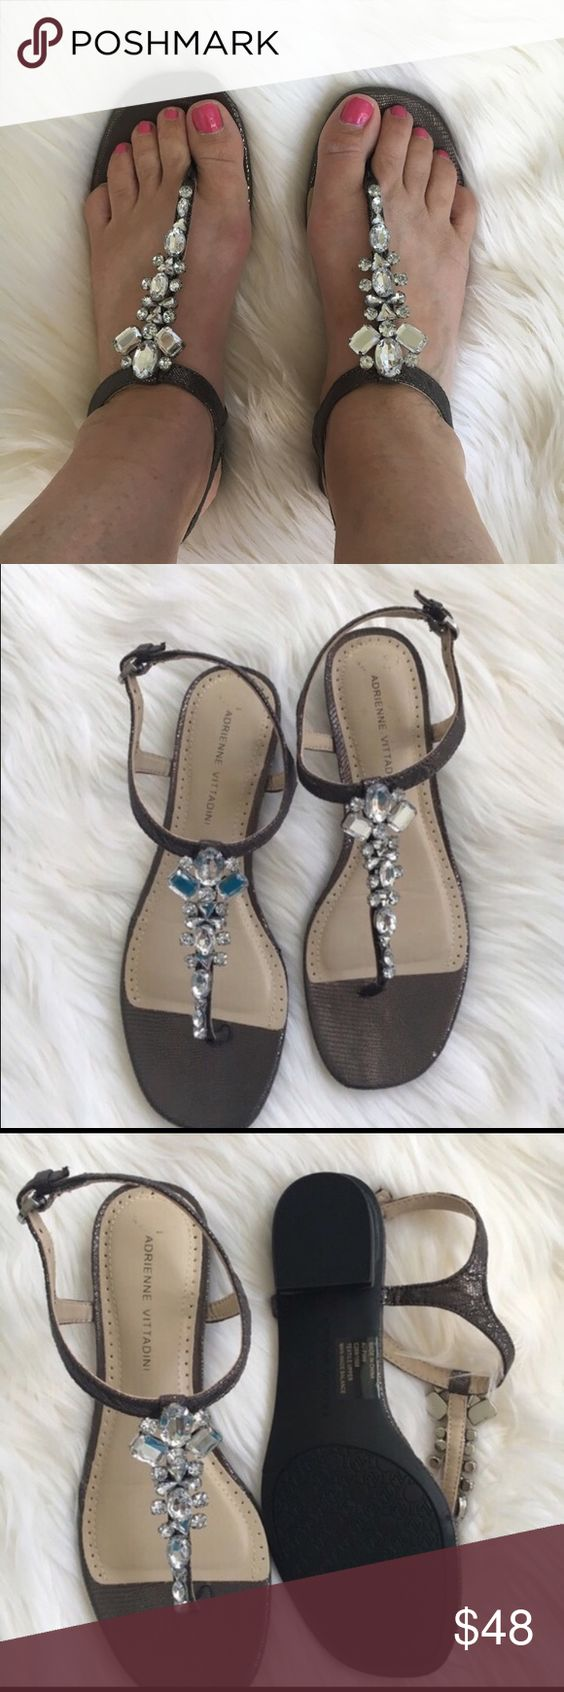 Adrienne Vittadini jeweled sandals   NWOT Rhinestone sandals with pewter leather uppers and man made soles. New!    NWOT Adrienne Vittadini Shoes Sandals